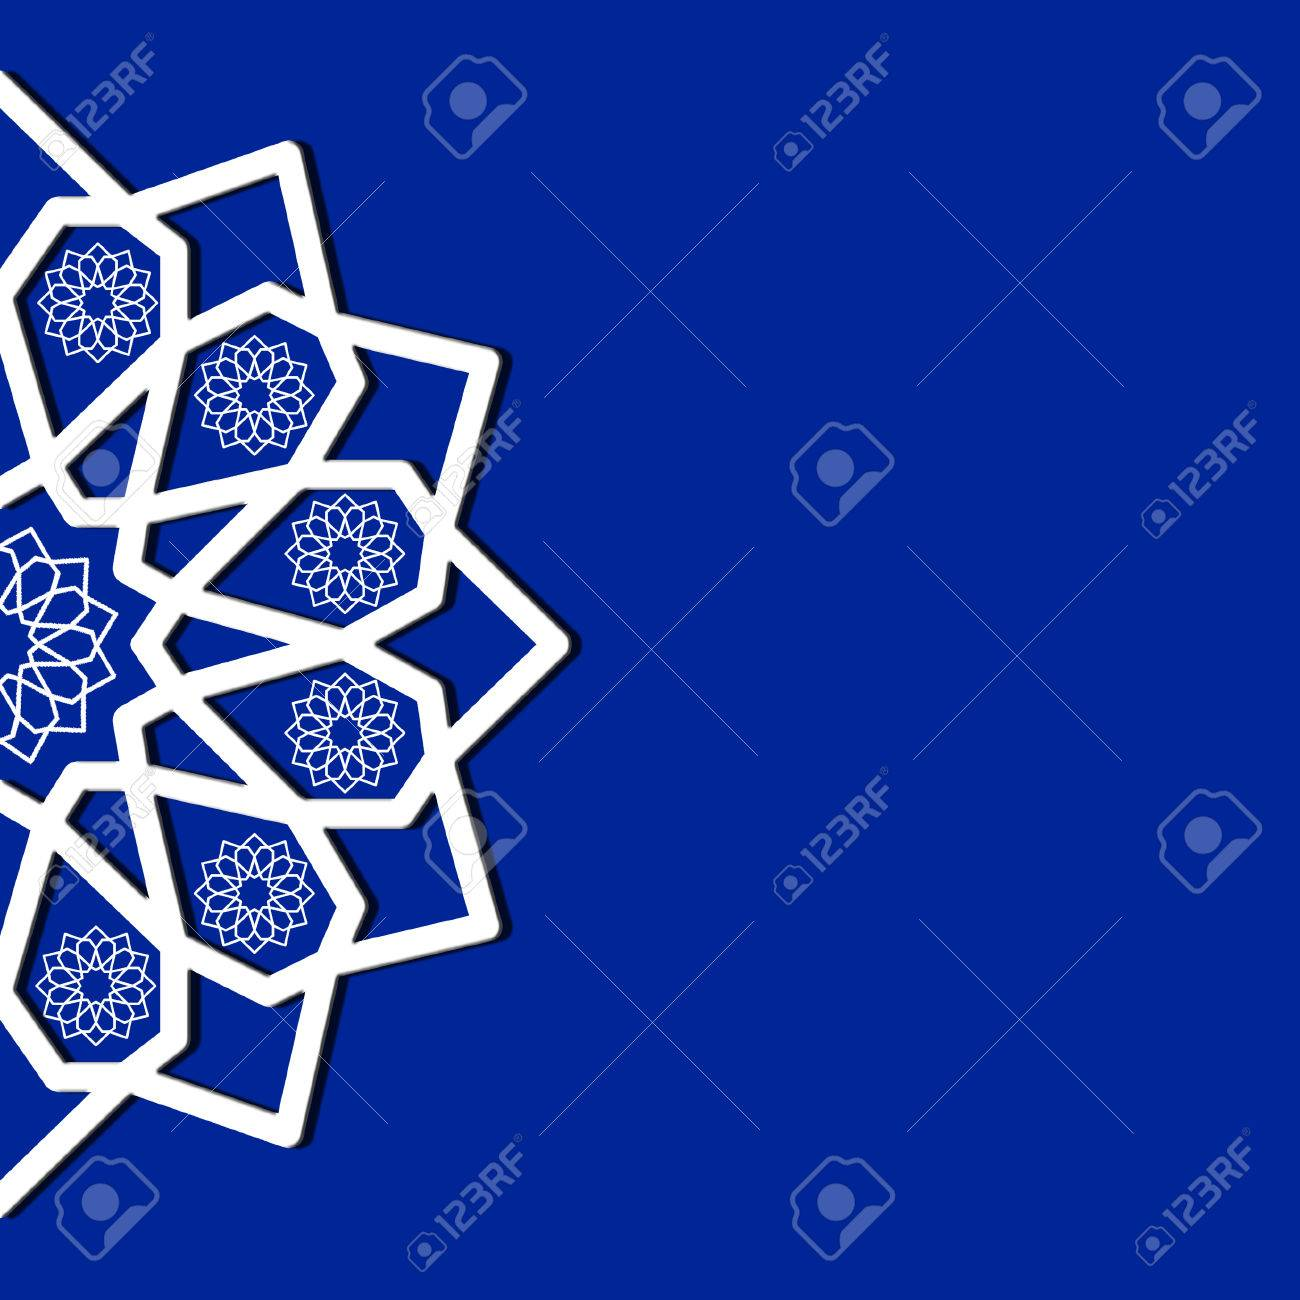 islamic geometric floral textbox or background royalty free cliparts rh 123rf com Free Fonts Free Calligraphy Ornaments